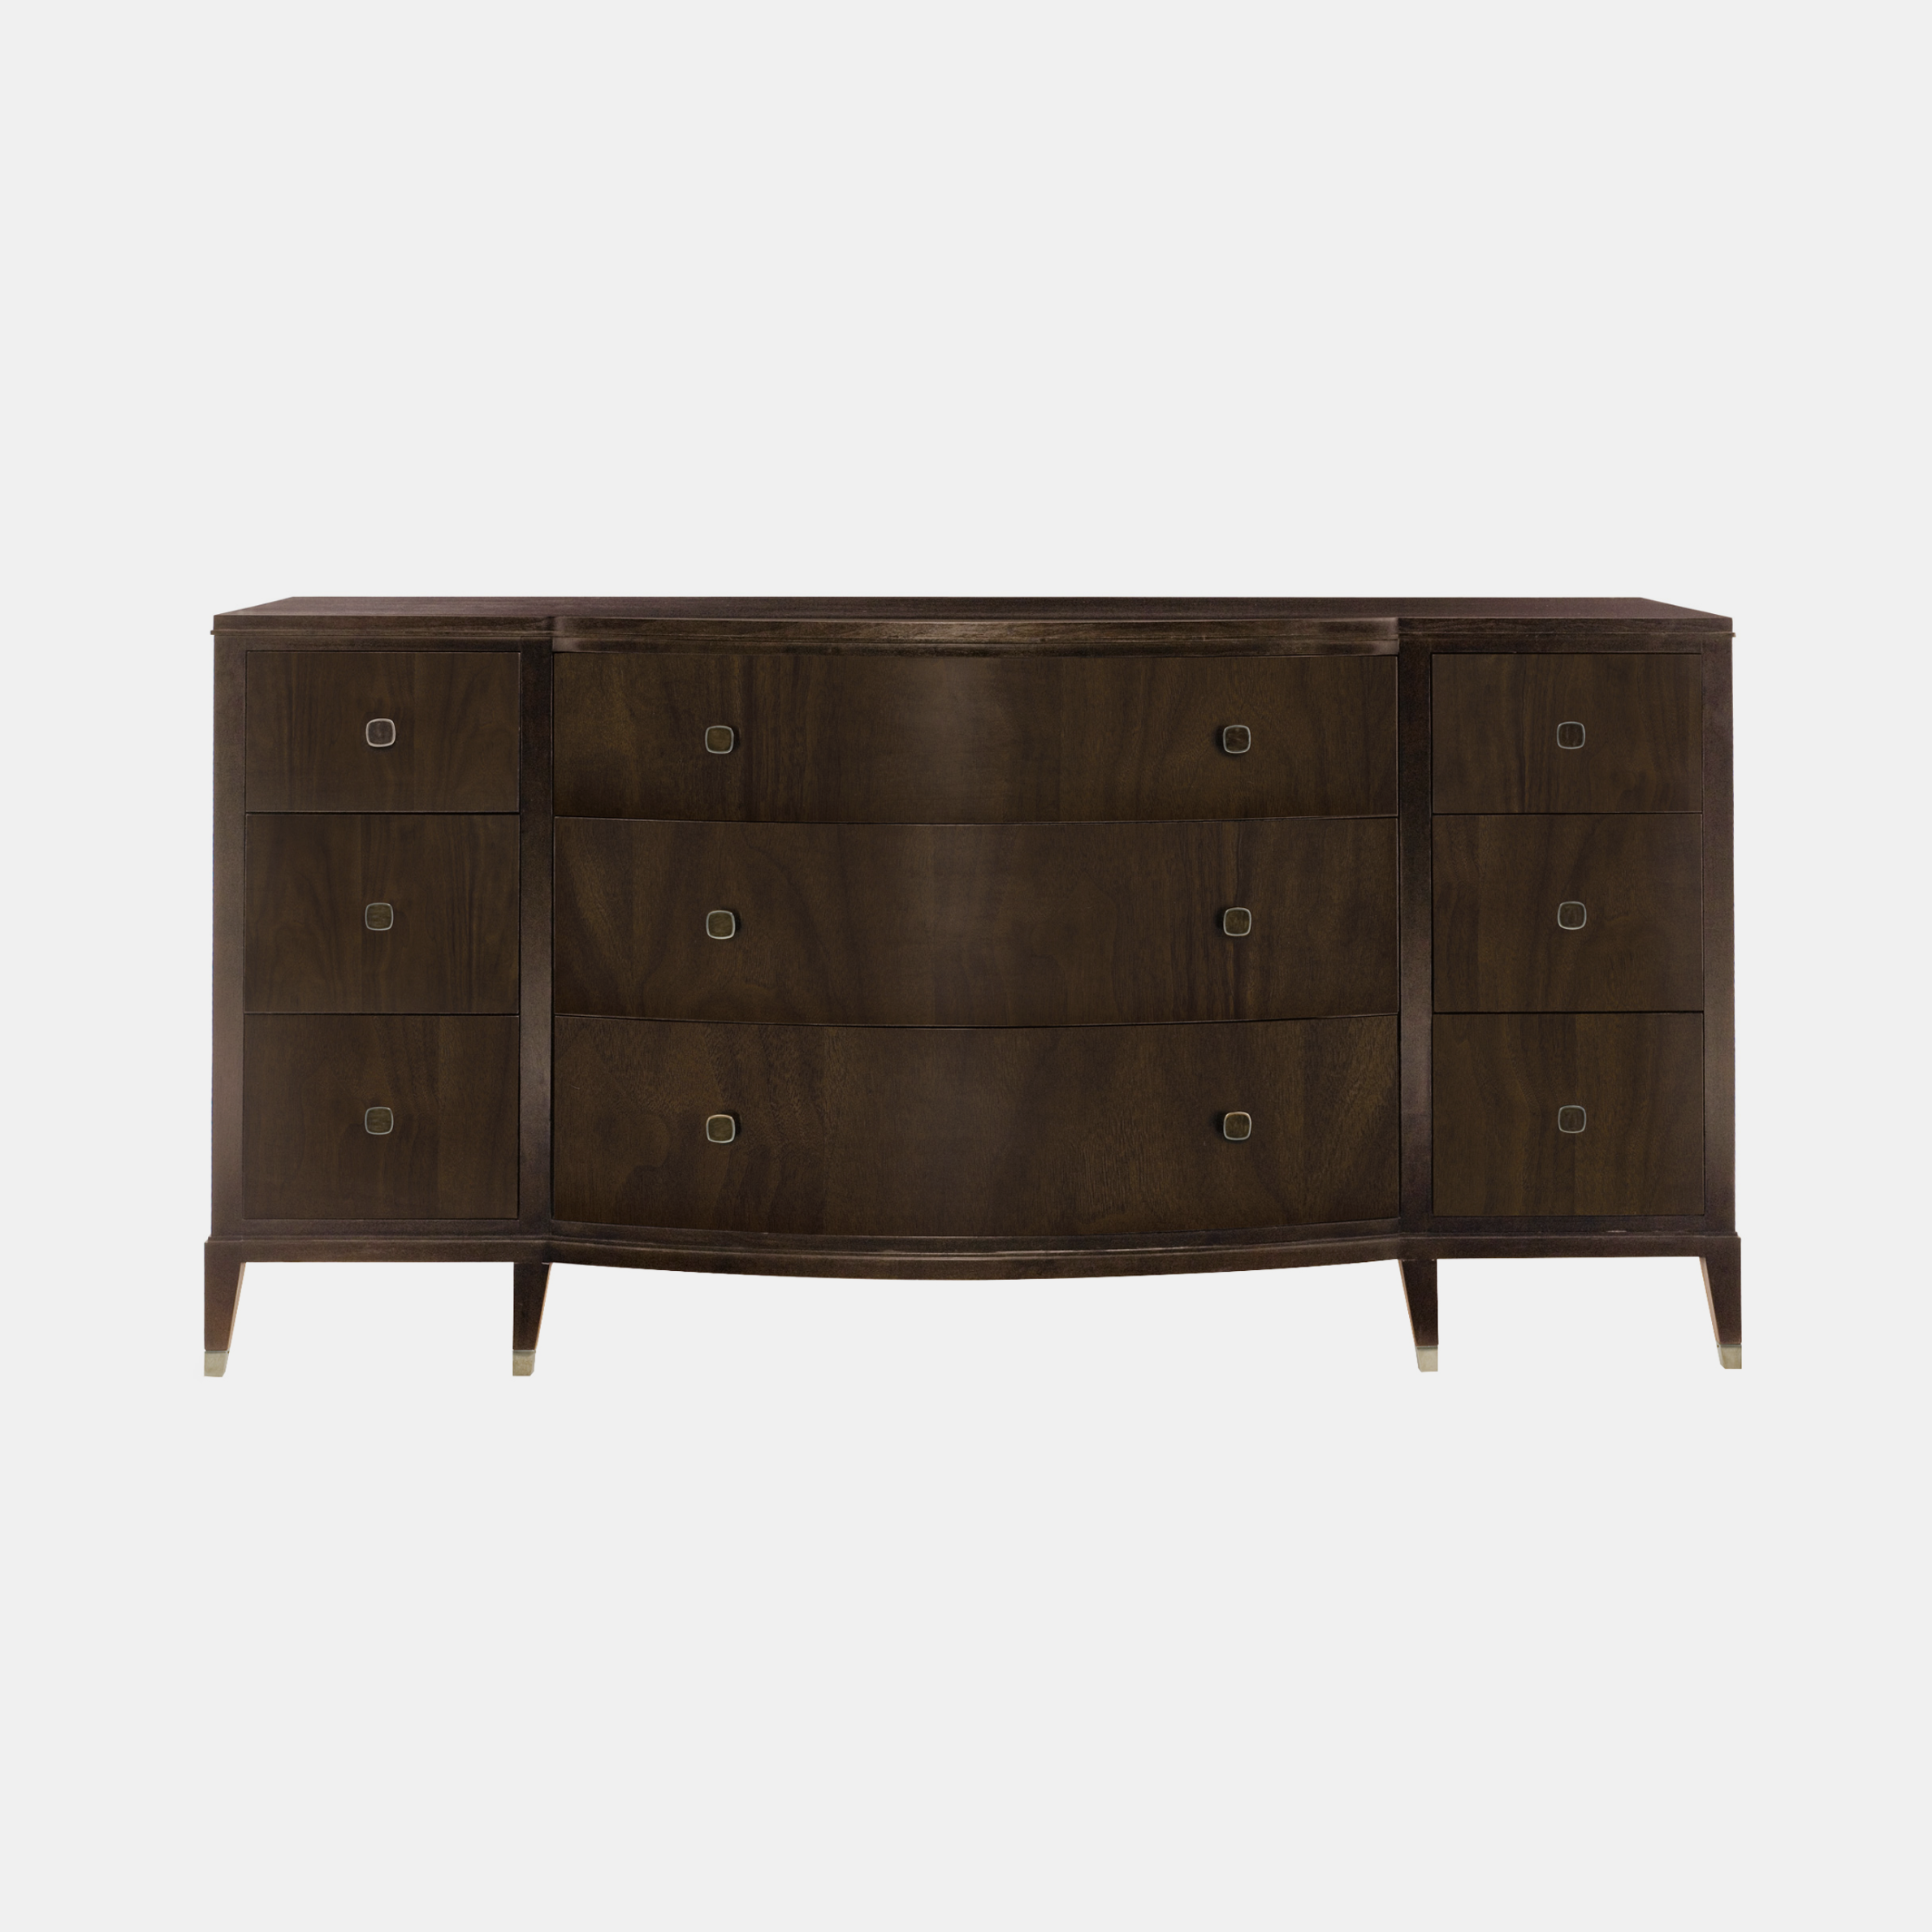 "Haven Dresser  72-1/4""l x 23-1/8""d x 37""h Also available as 3-drawer nightstand. SKU120BHT"